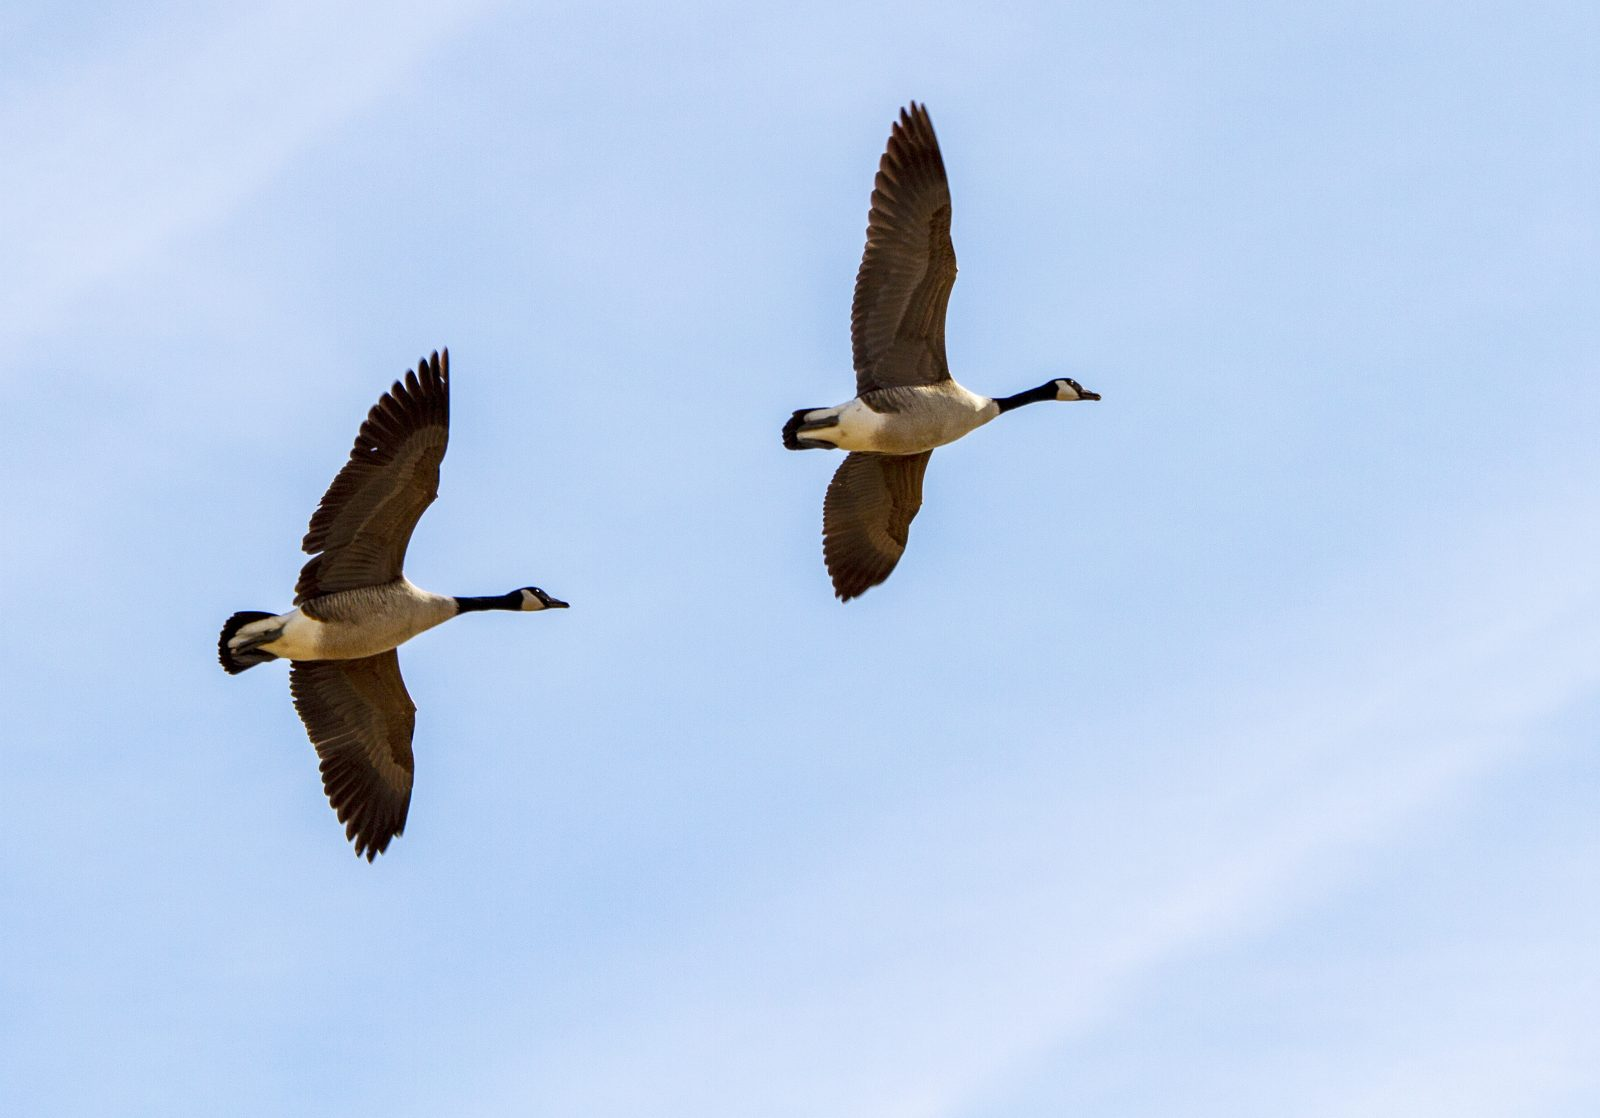 A Pair of Geese on Wing